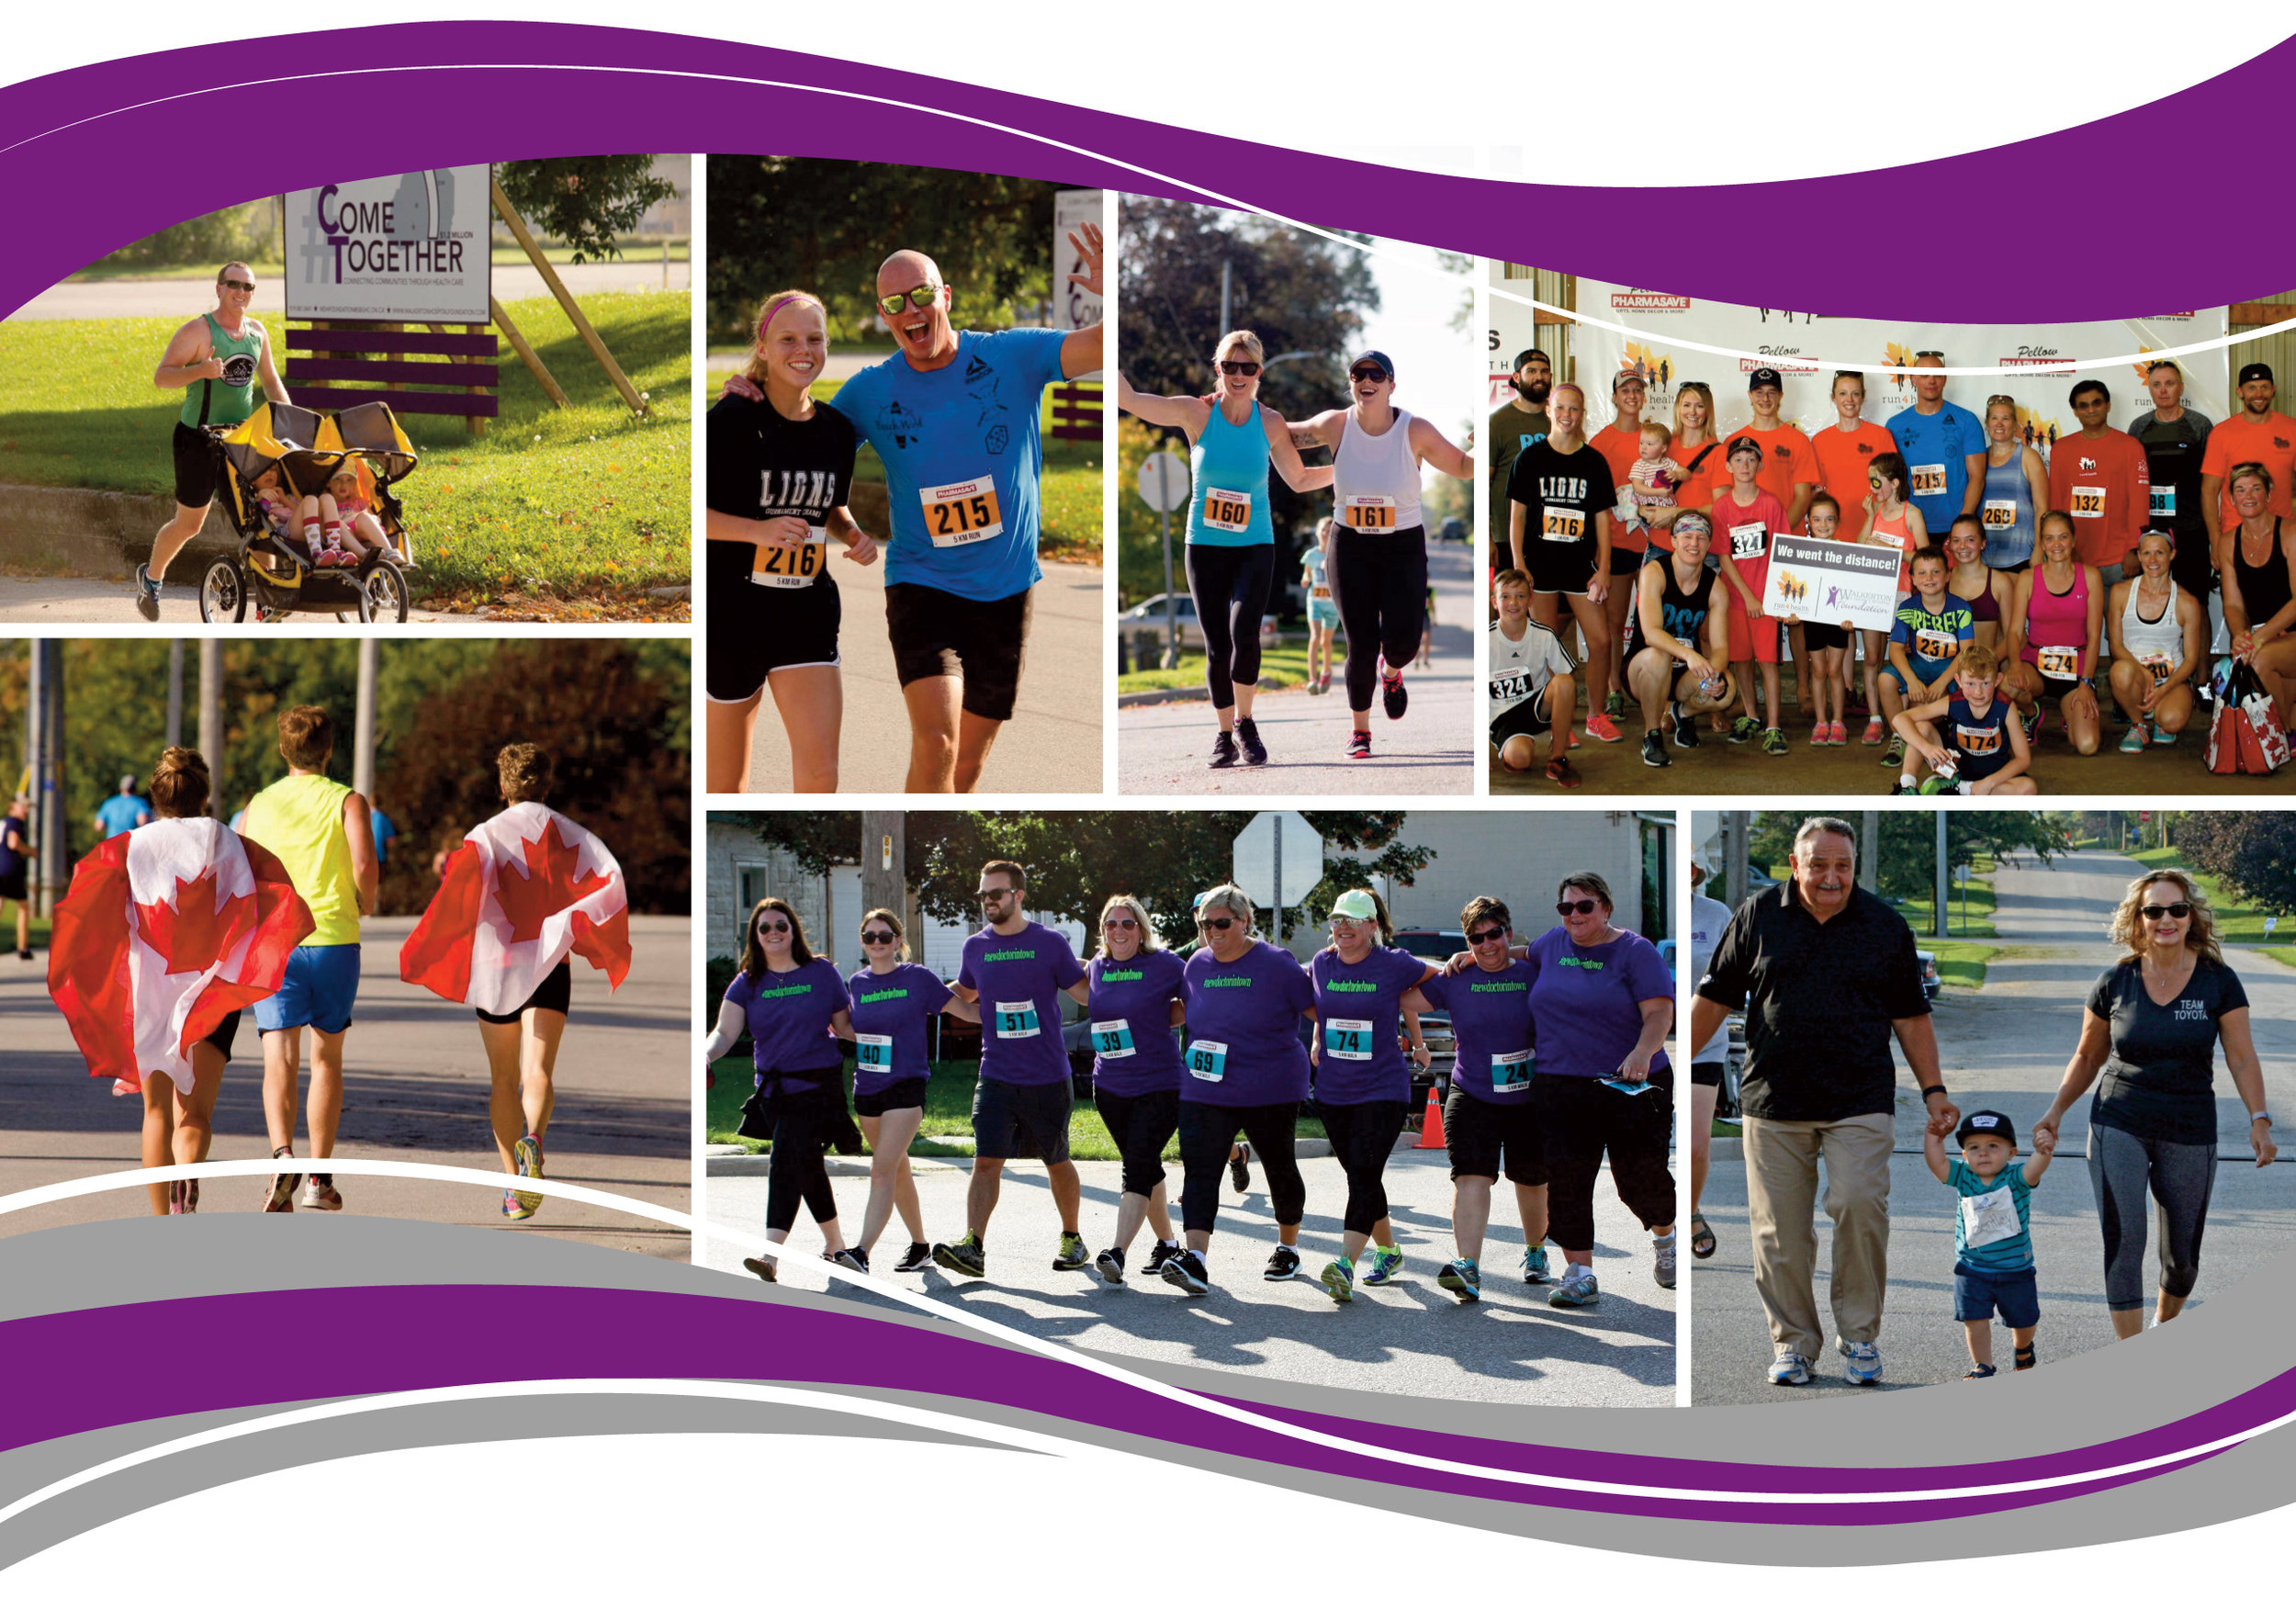 WDHF_RUN 4 HEALTH COLLAGE_2017.jpg